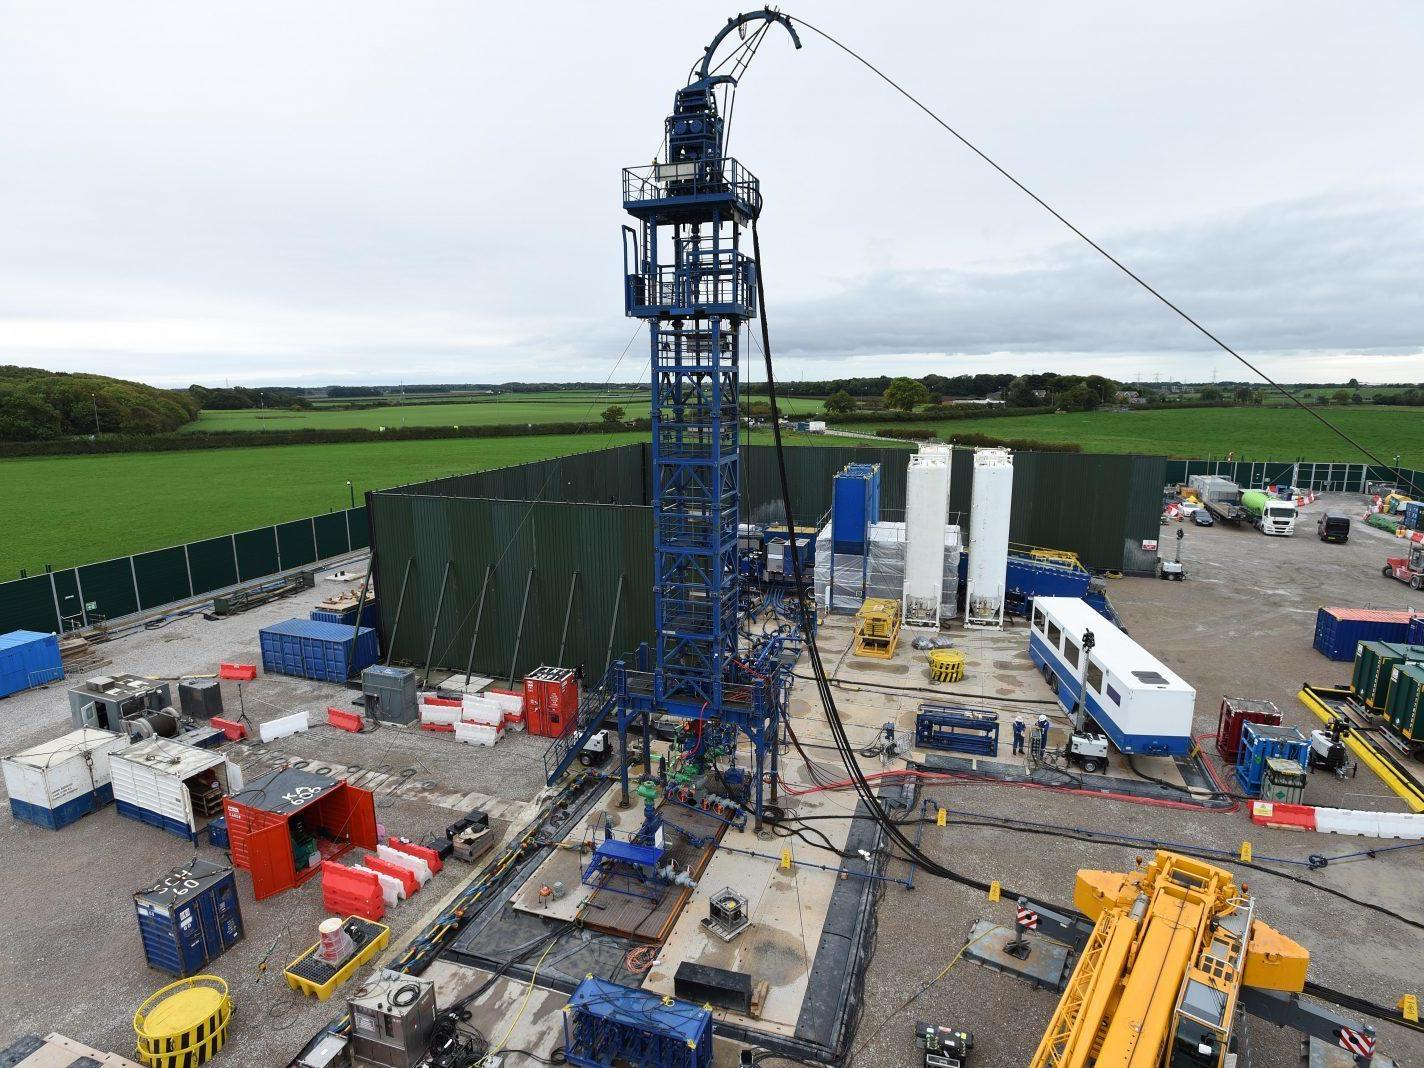 'Shocking' decision to resume fracking in Lancashire condemned by campaigners